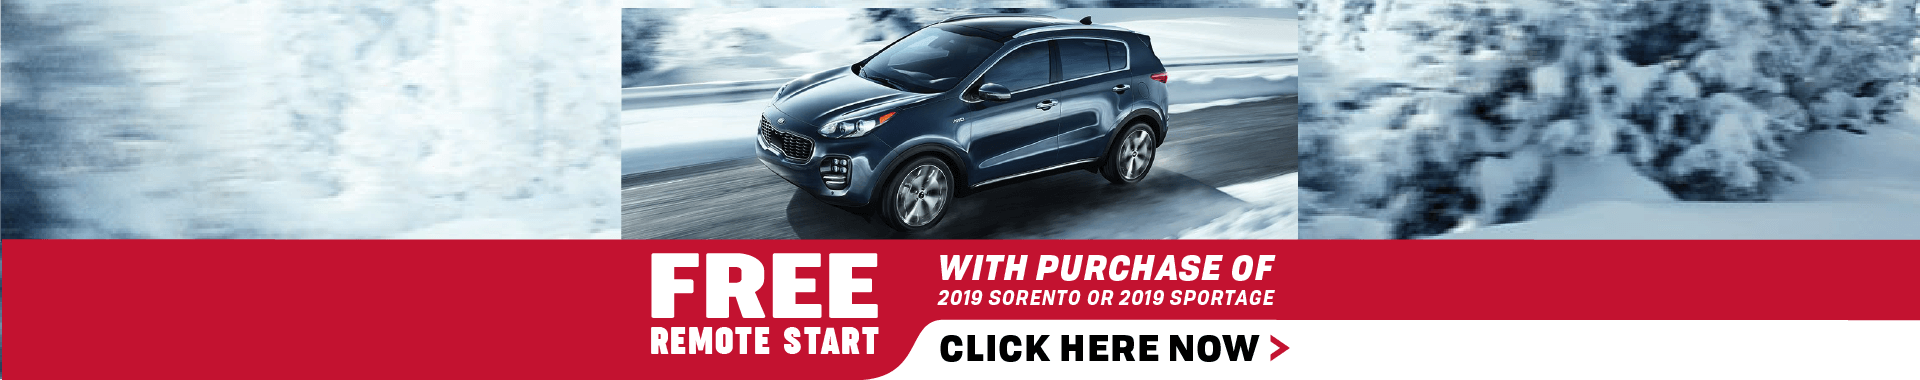 Free Remote Start with Puchase!